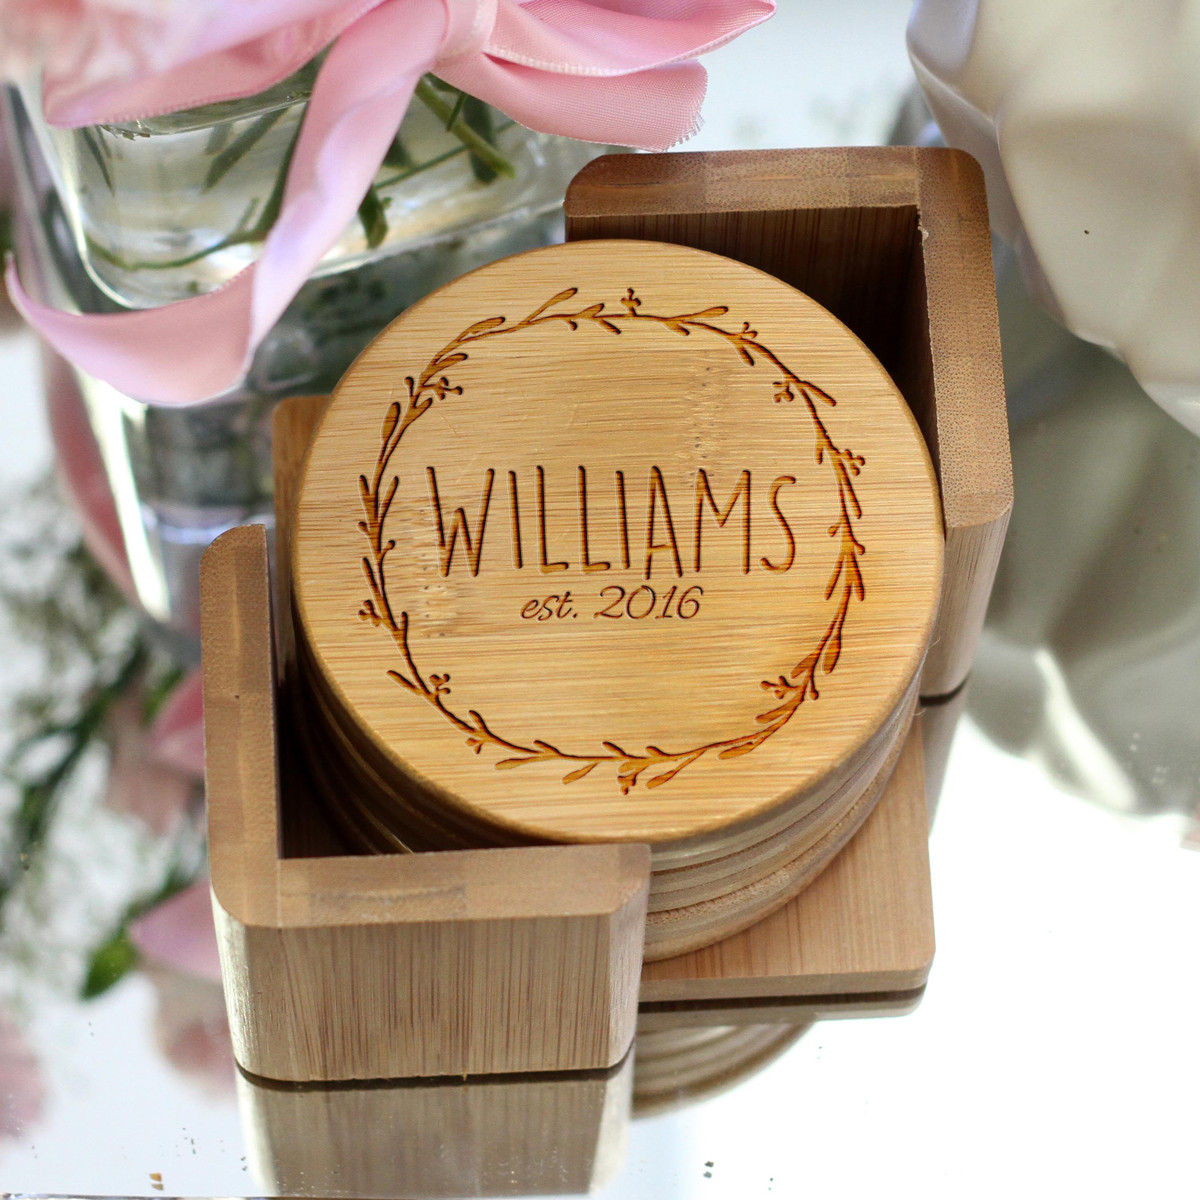 Williams Wreath Personalized Bamboo Coaster Set 54f9137c2dee